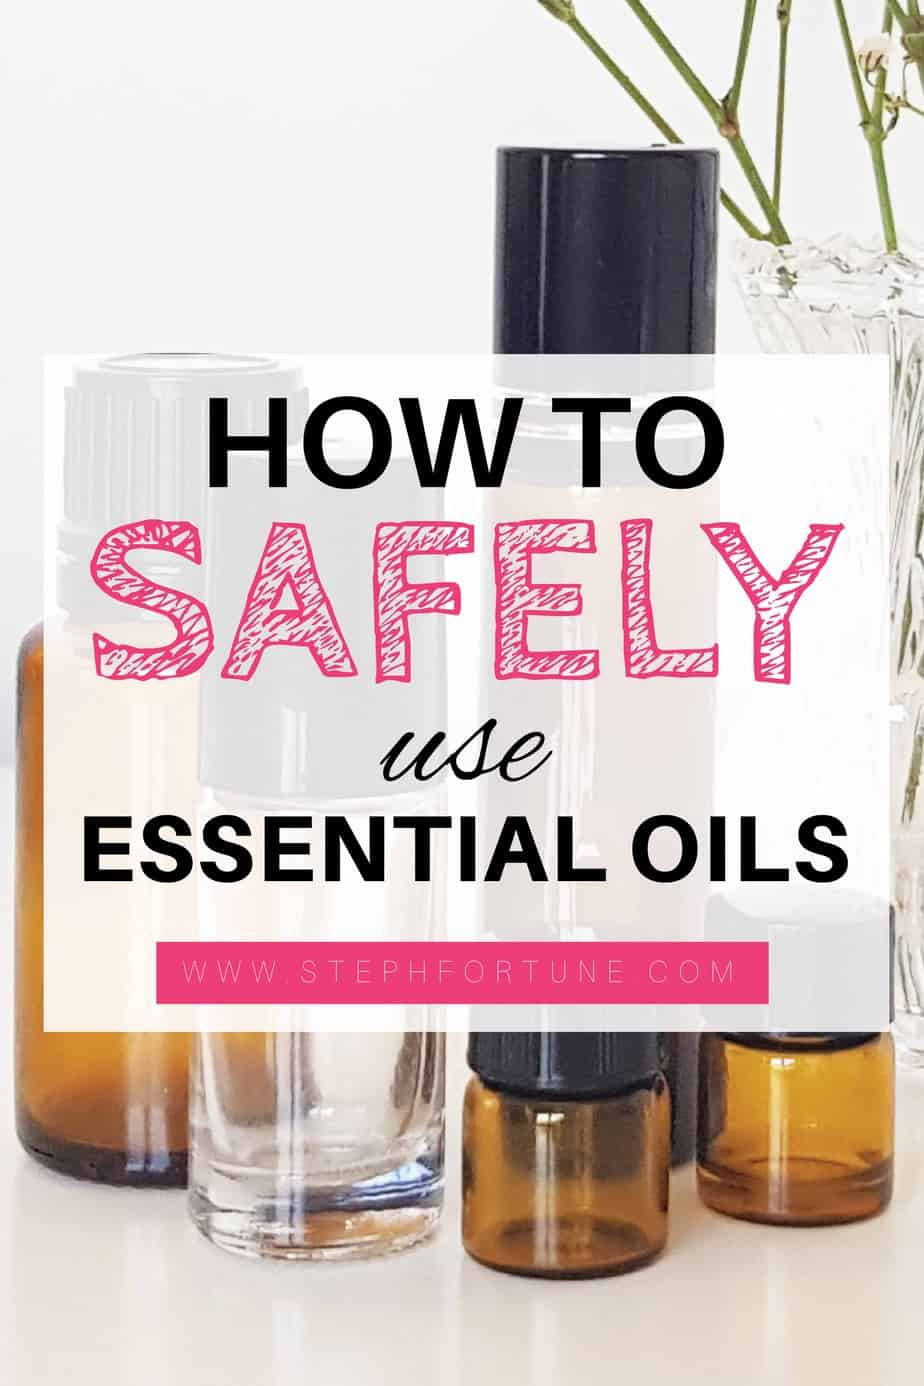 How to Safely Use Essential Oils